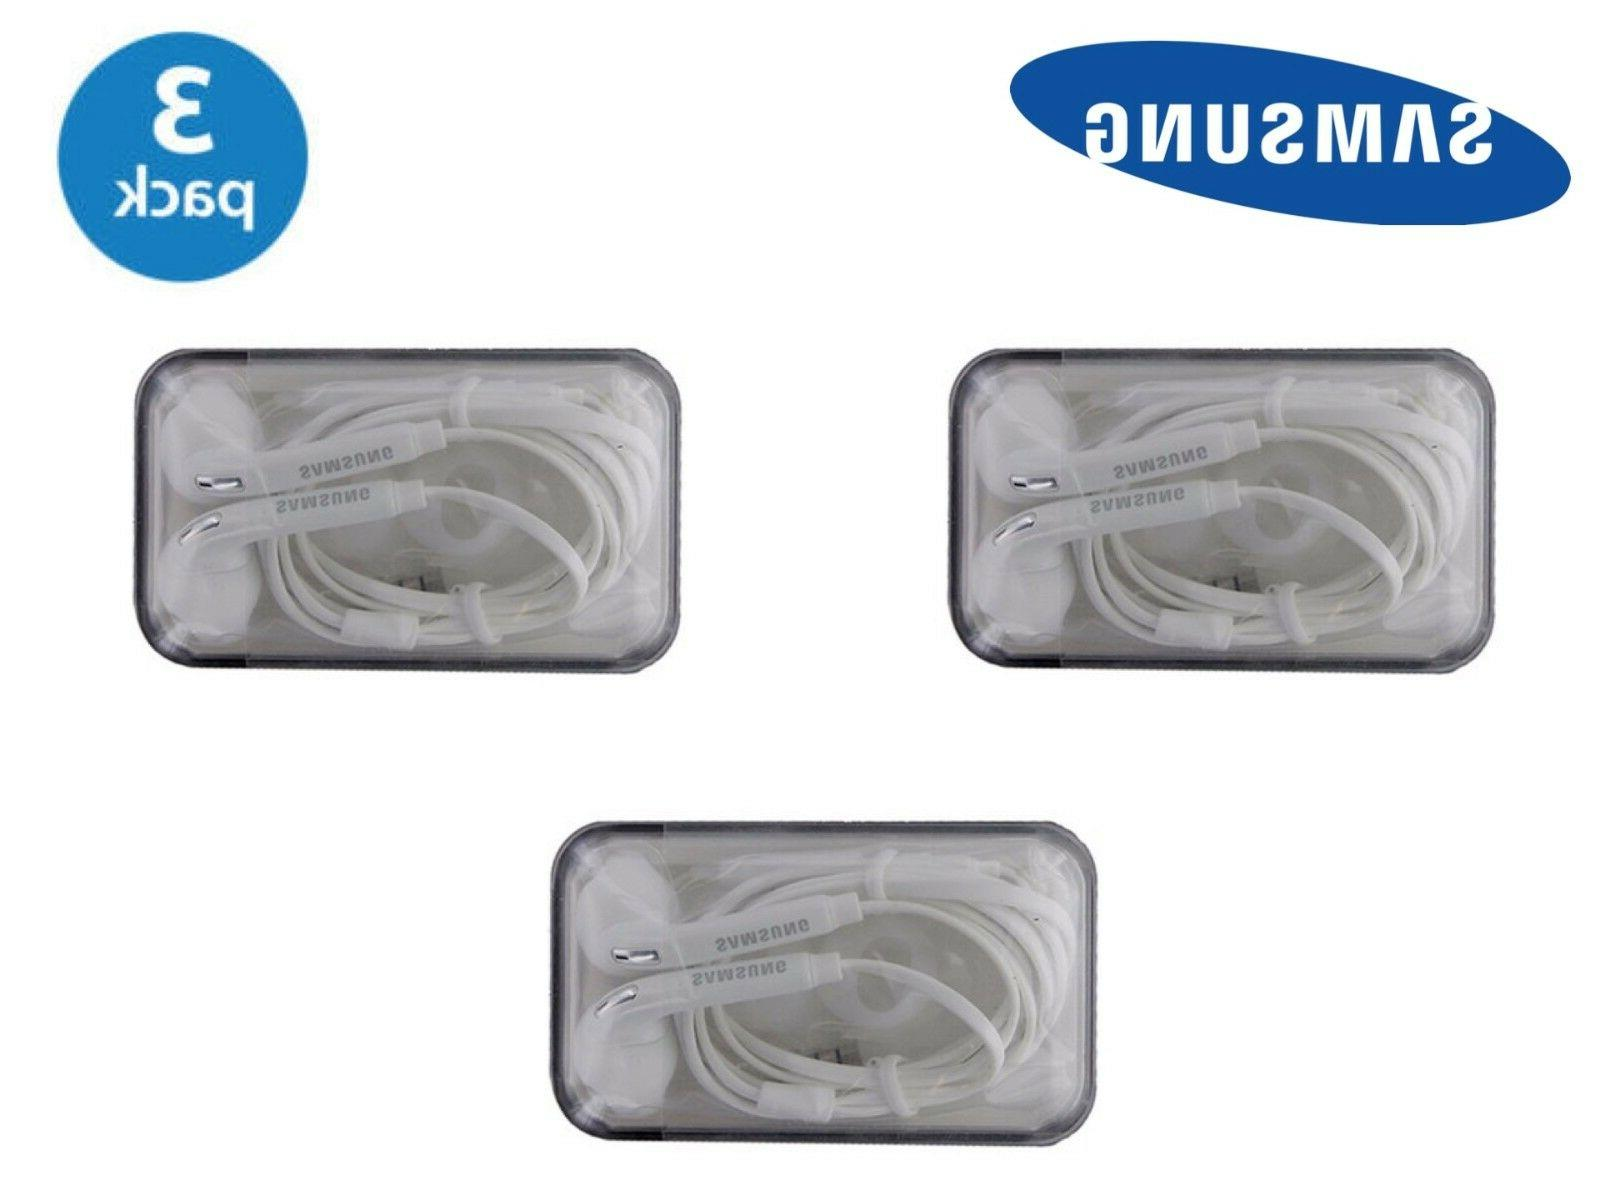 3x Original 5 Headset Earphone EG920BW